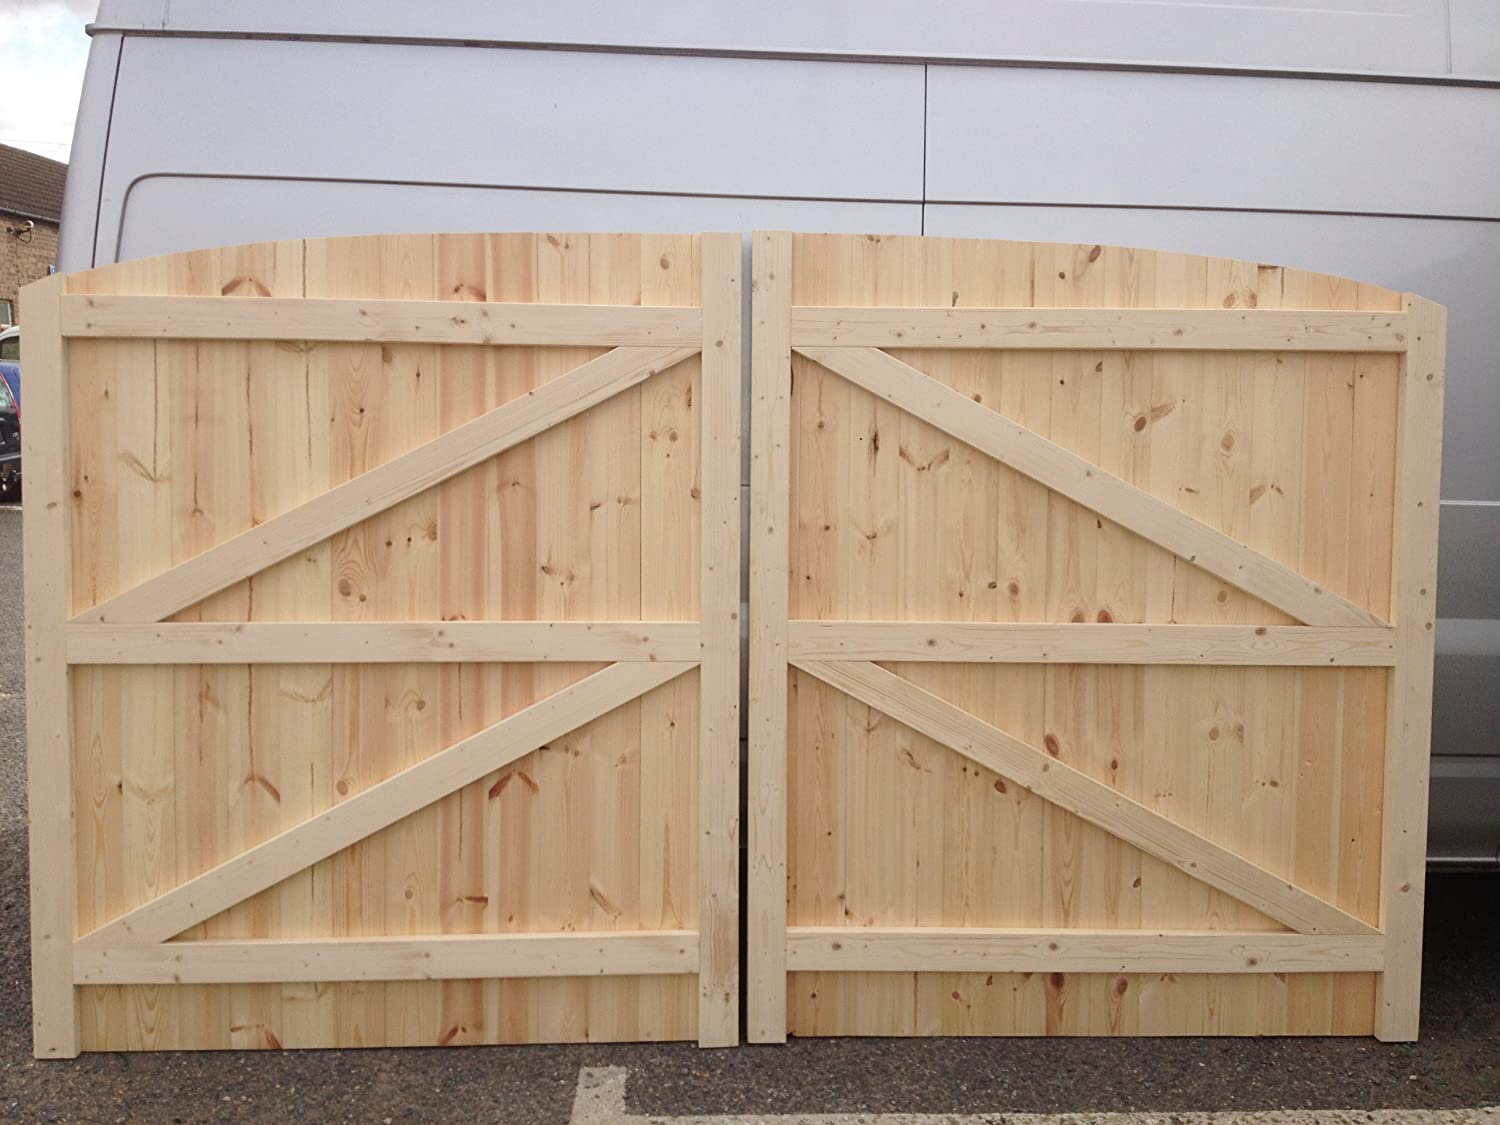 Driveway Gates 4ft Wide X 6ft Tall Each